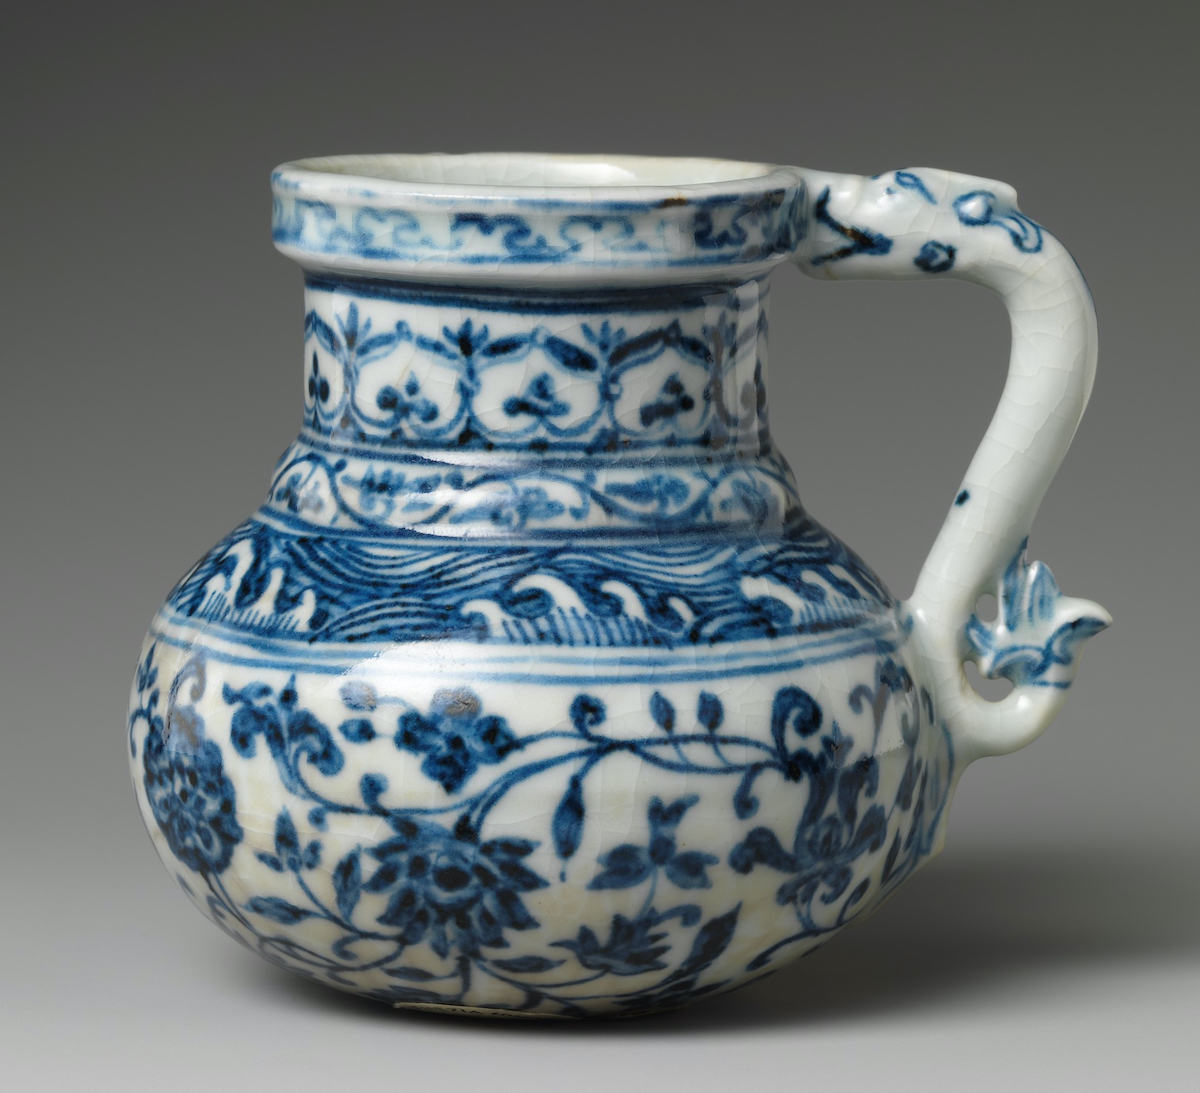 Porcelain tankard with blue ornate decorations